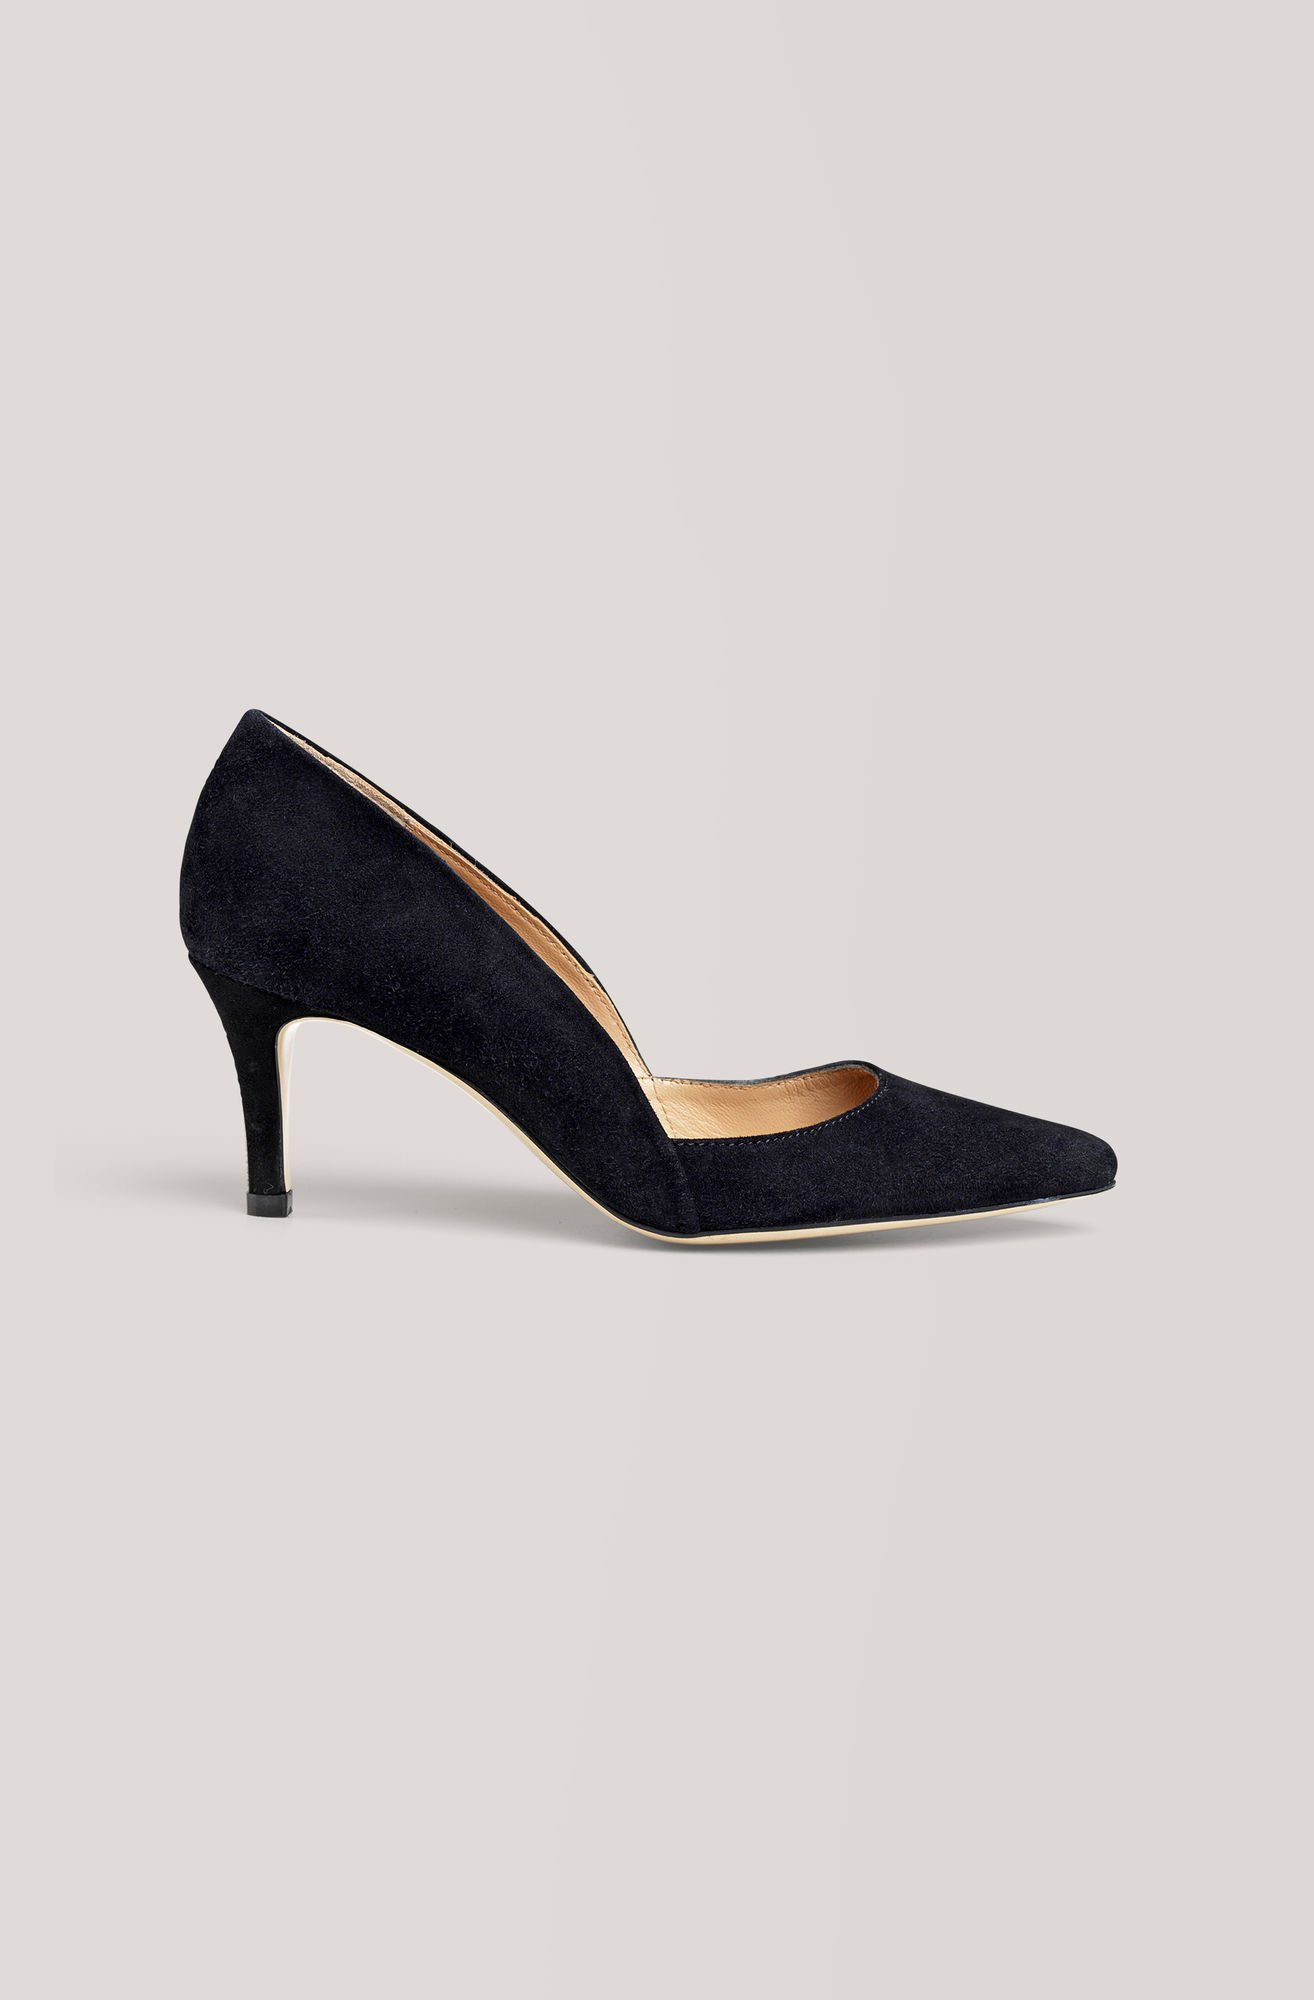 Ganni Harper Pumps, sort